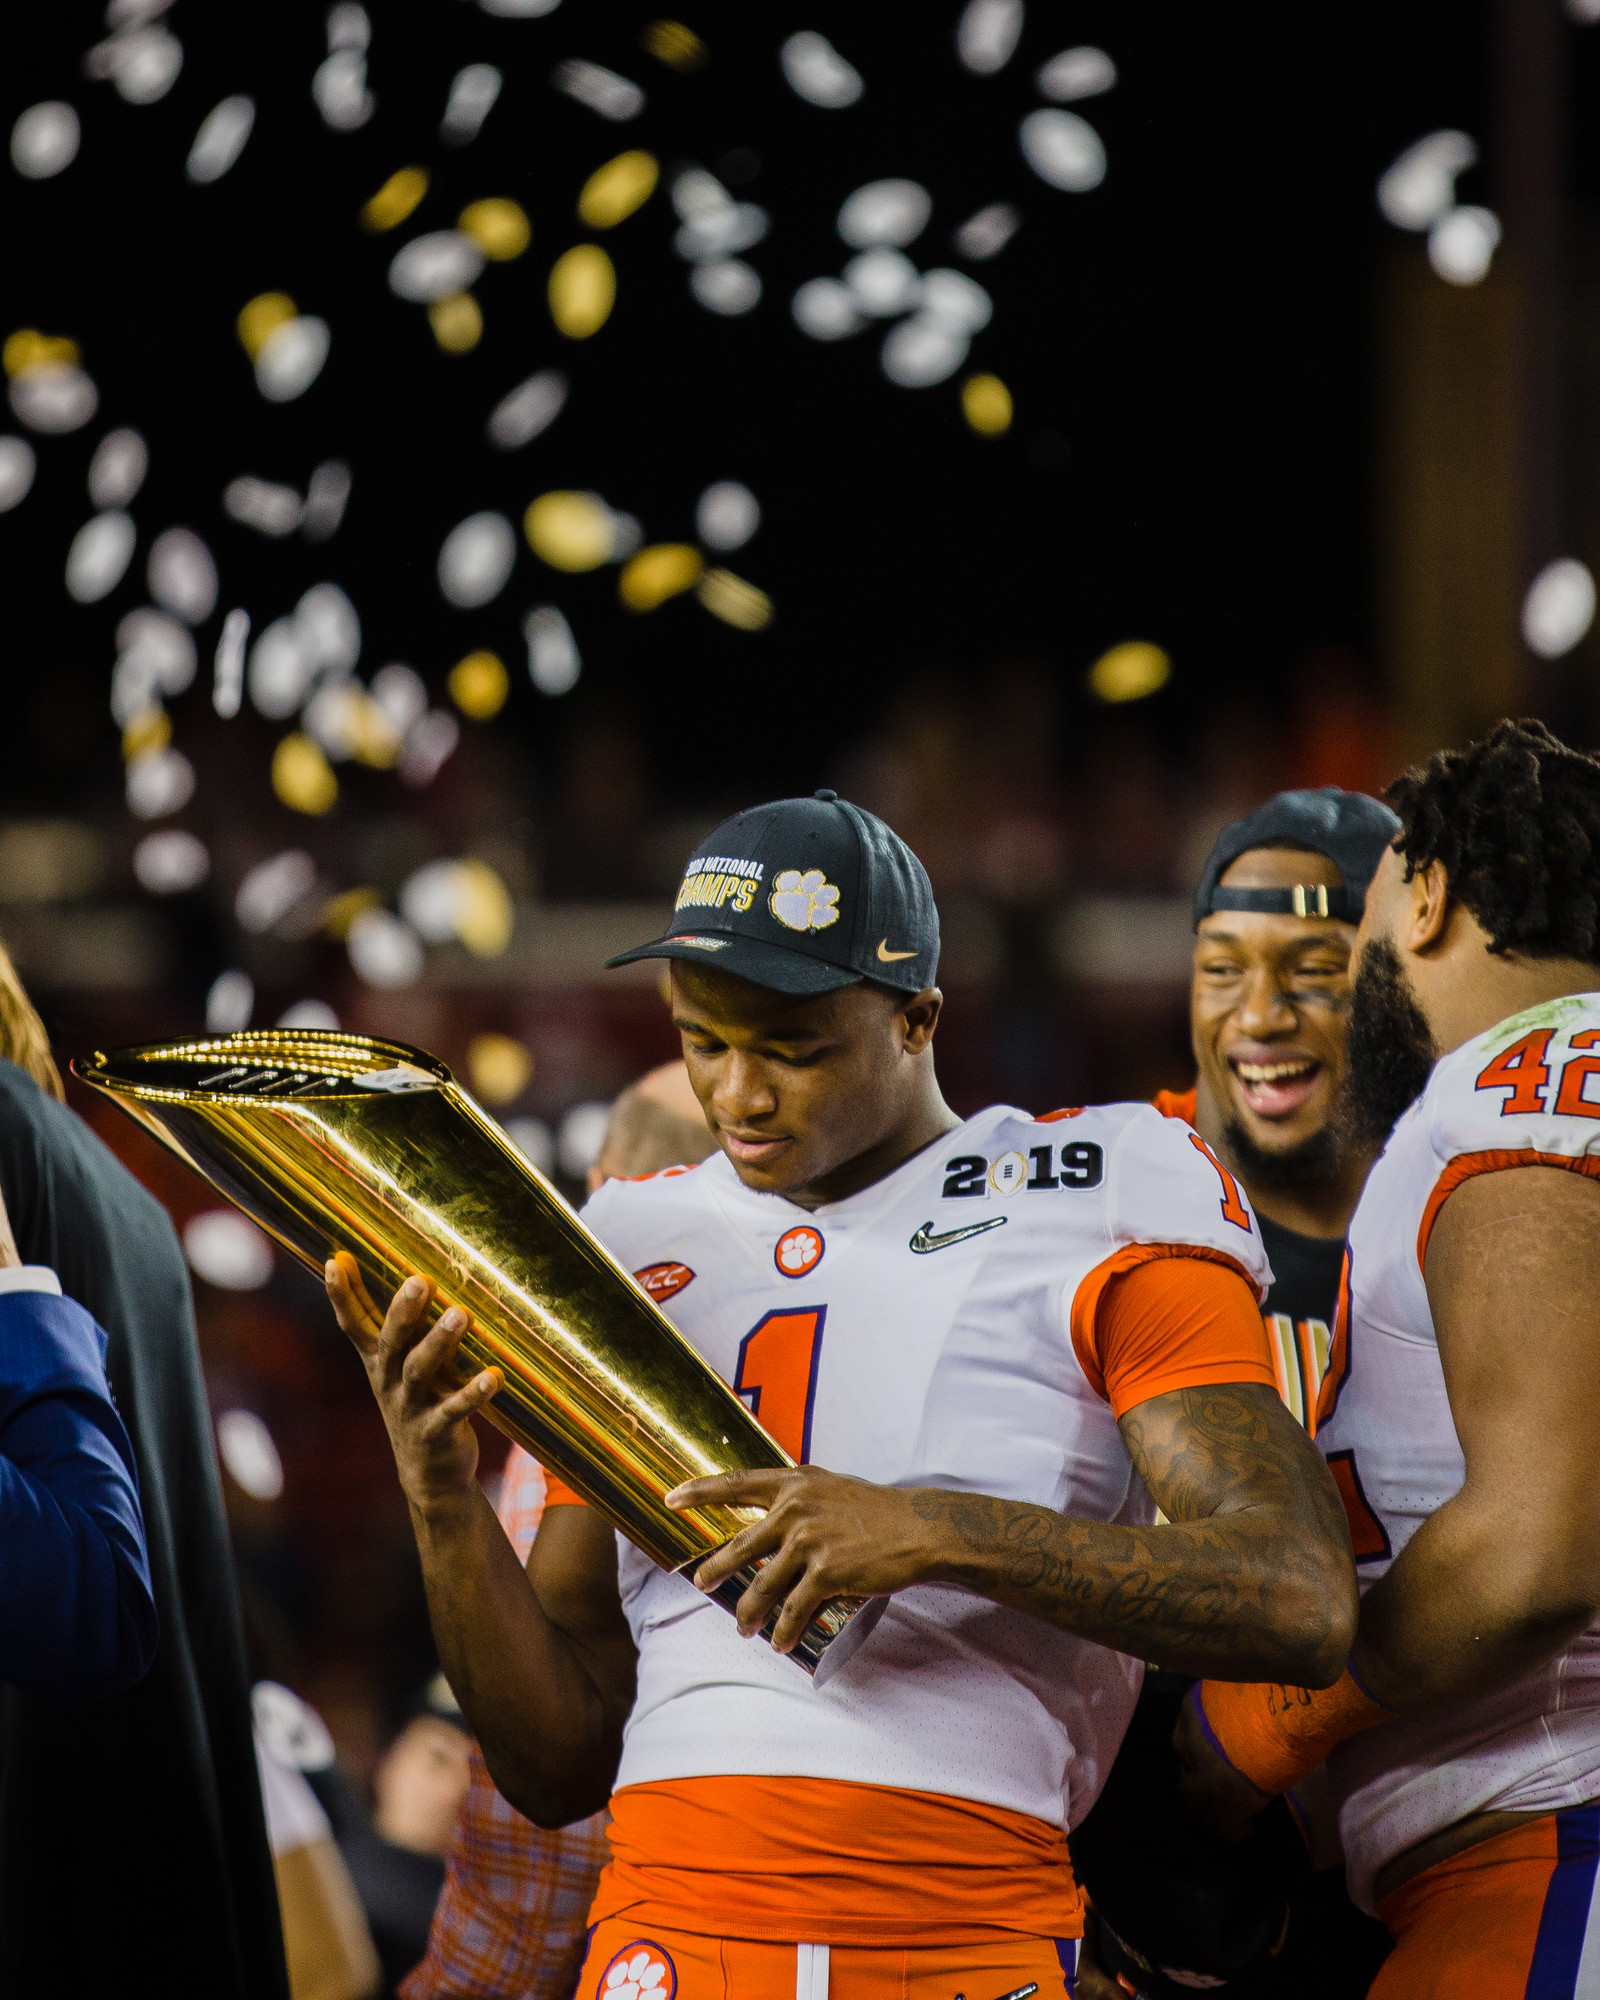 Clemson cornerback Trayvon Mullen, the game's defensive MVP, holds the 2019 CFP National Championship trophy at Levi's Stadium in Santa Clara, California, on Monday, Jan. 7 after the Tigers routed Alabama 44-16.